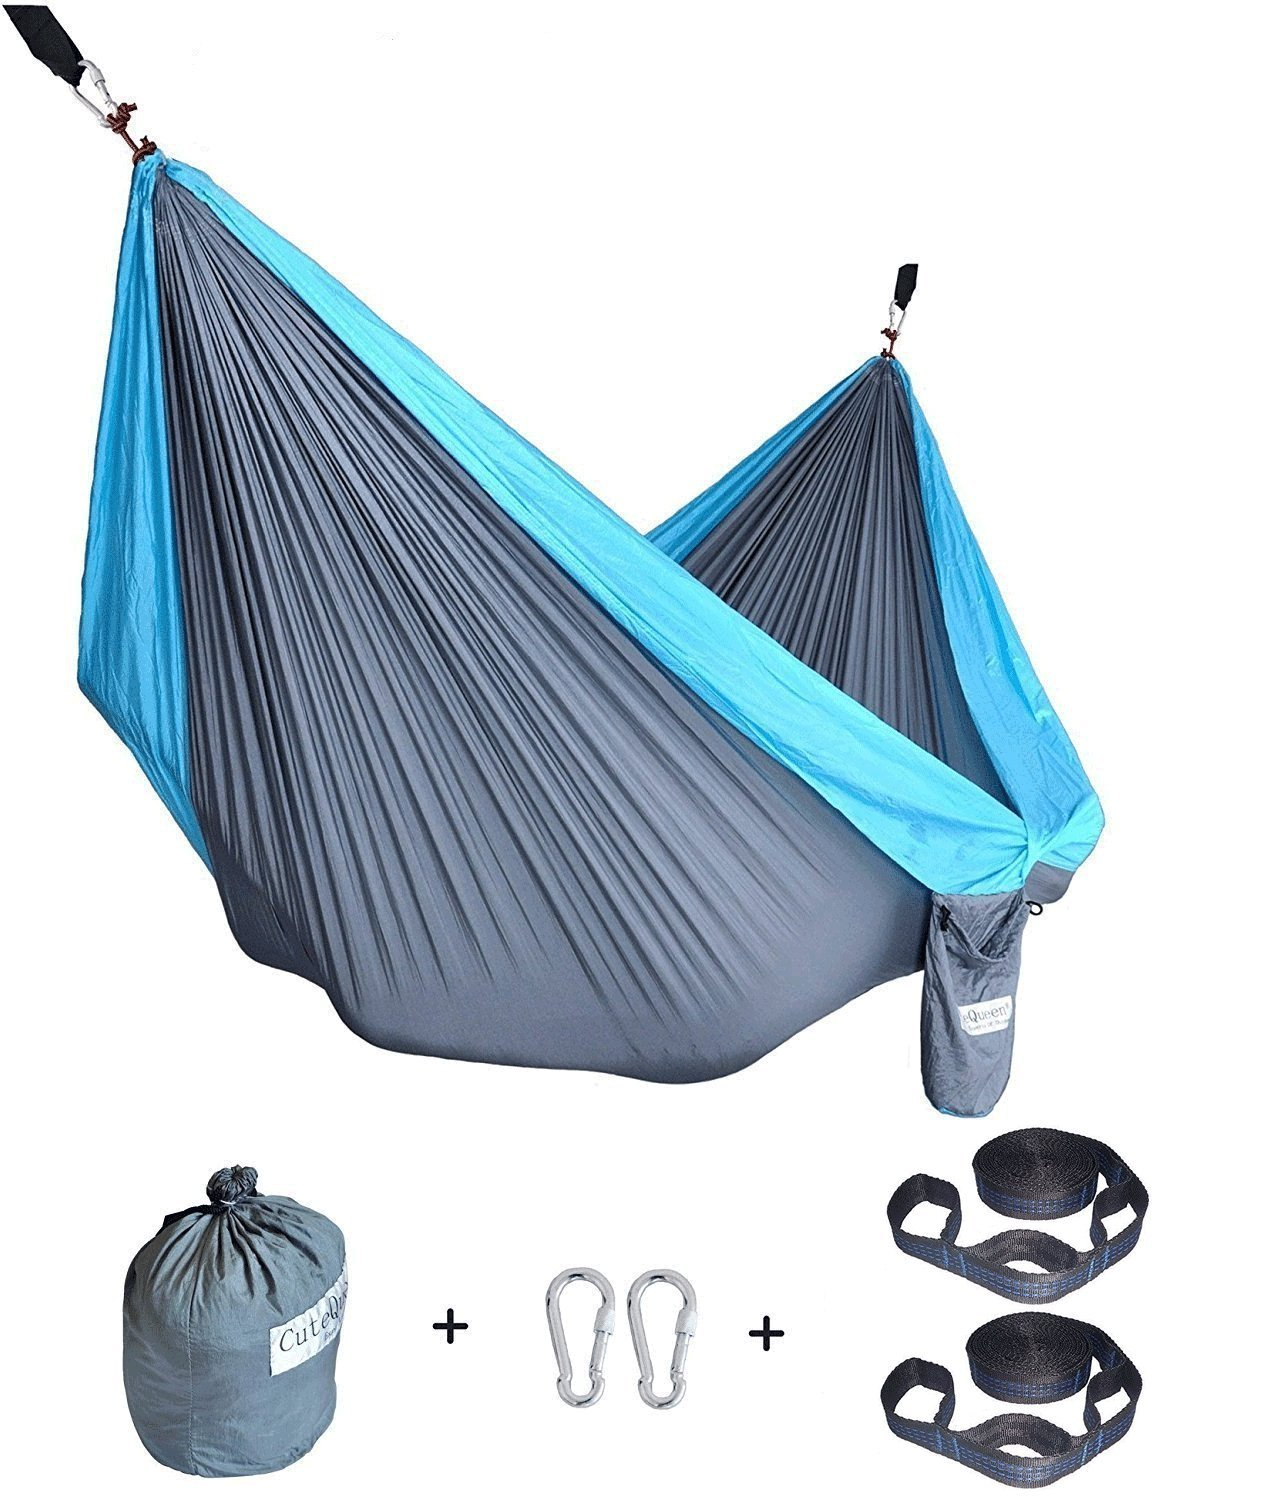 Cutequeen Trading Parachute Nylon Fabric Hammock with Tree Straps;Color: Grey/Sky Blue by Cutequeen (Image #2)